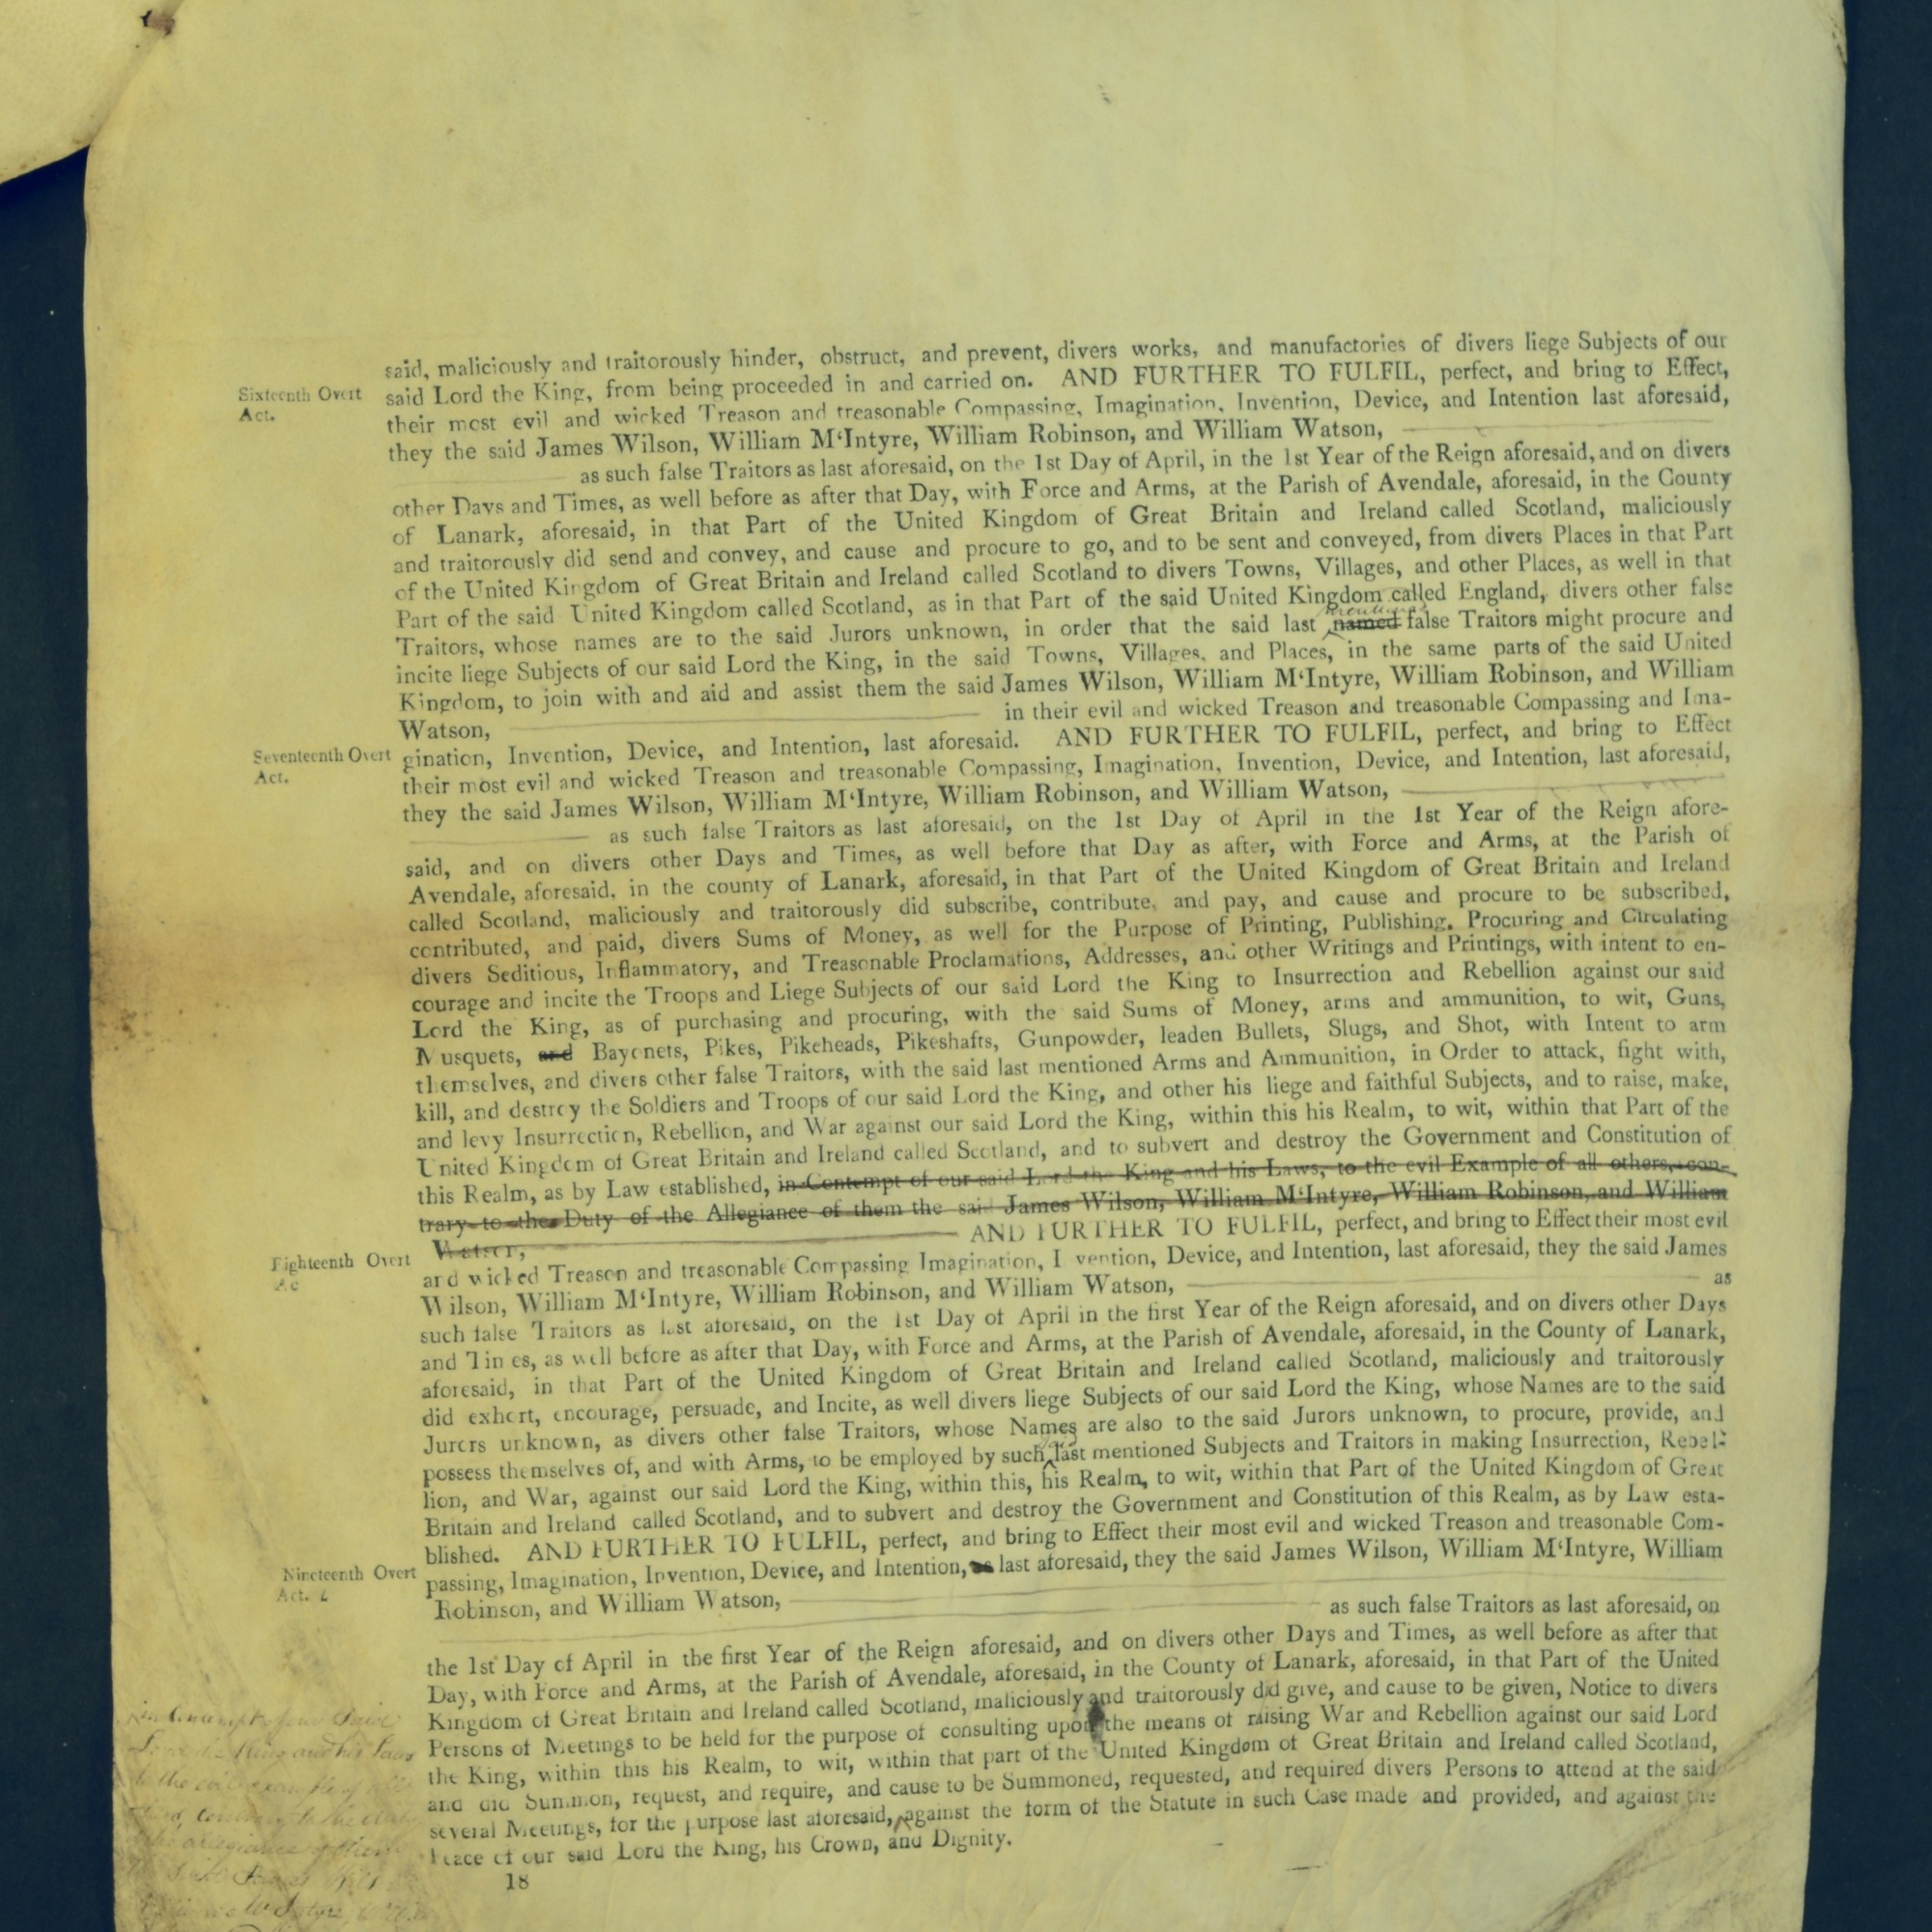 Treason Trials for the County of Lanark, the Strathaven Case. True bills found against four men, James Wilson, William McIntyre, William Robinson and William Watson. National Records of Scotland, Crown copyright, JC21/3/4 p18